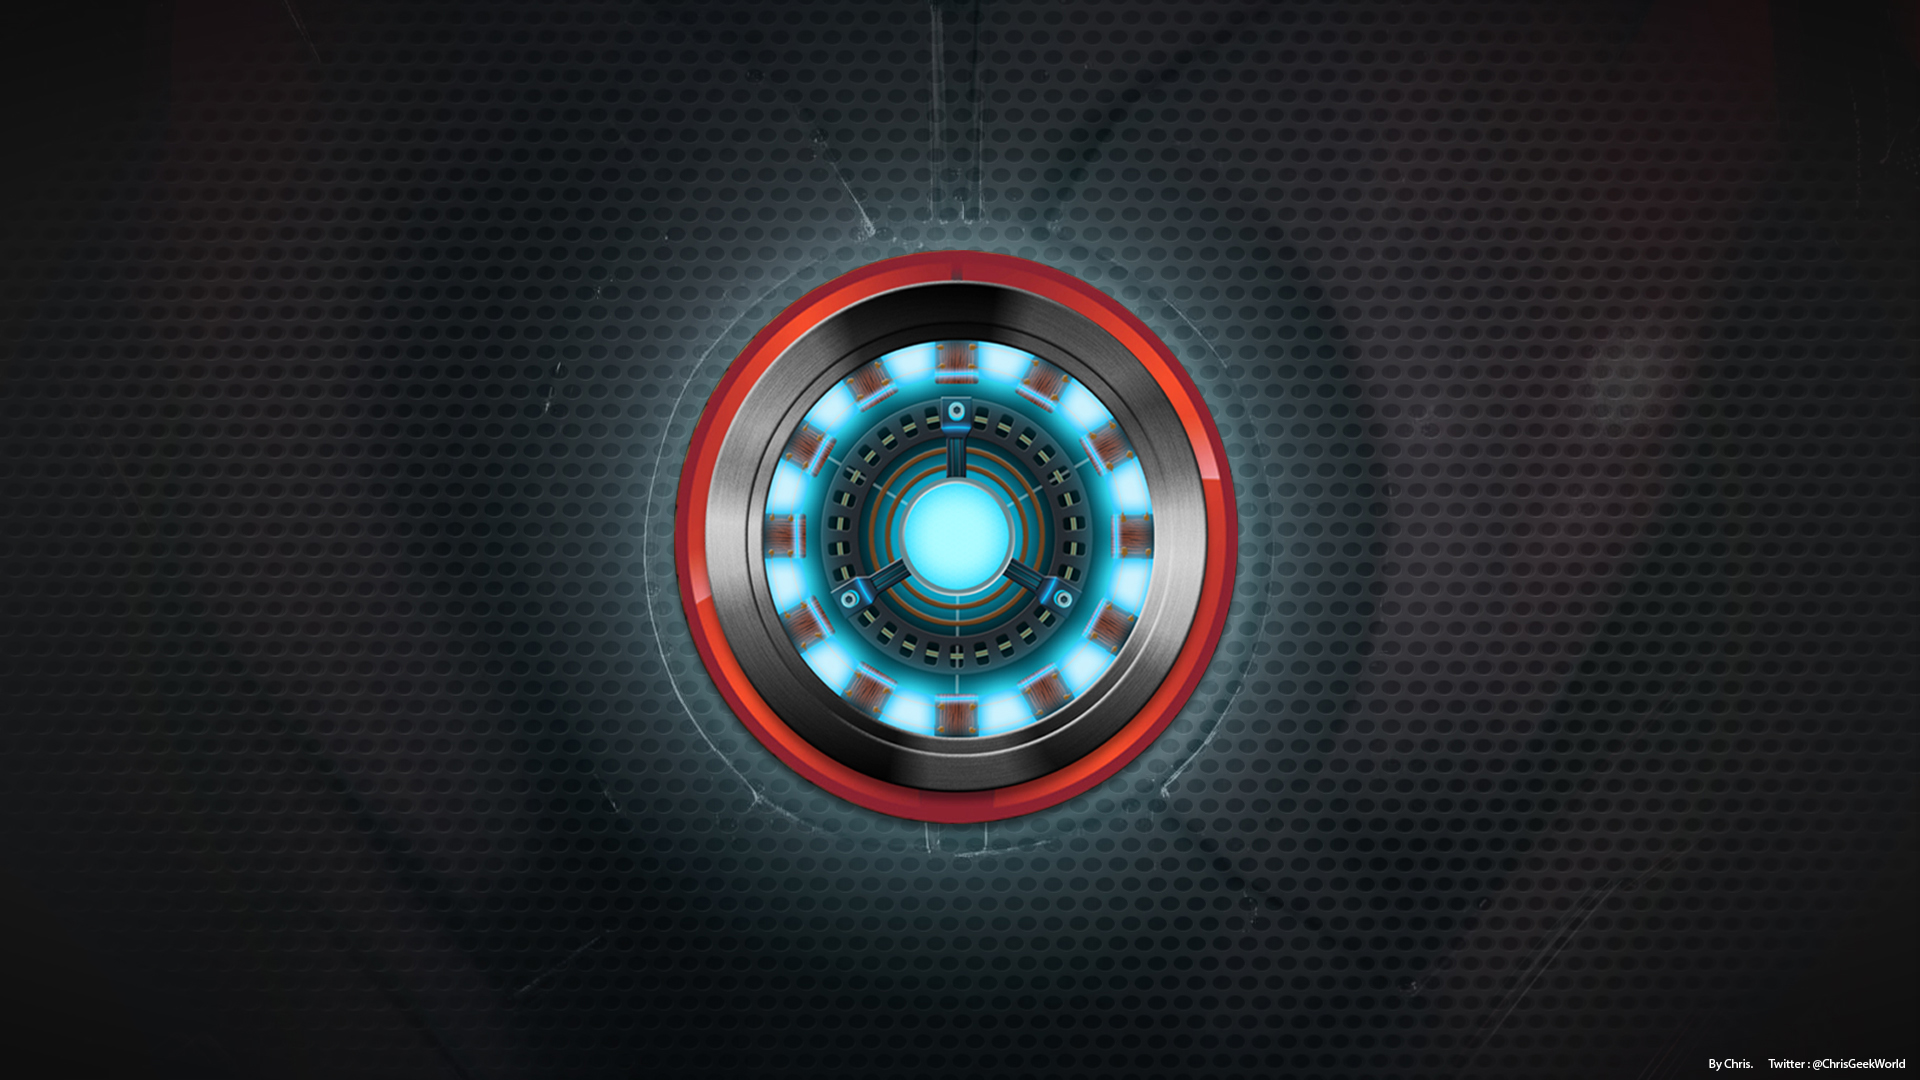 Iron Man Background by chrisarea51